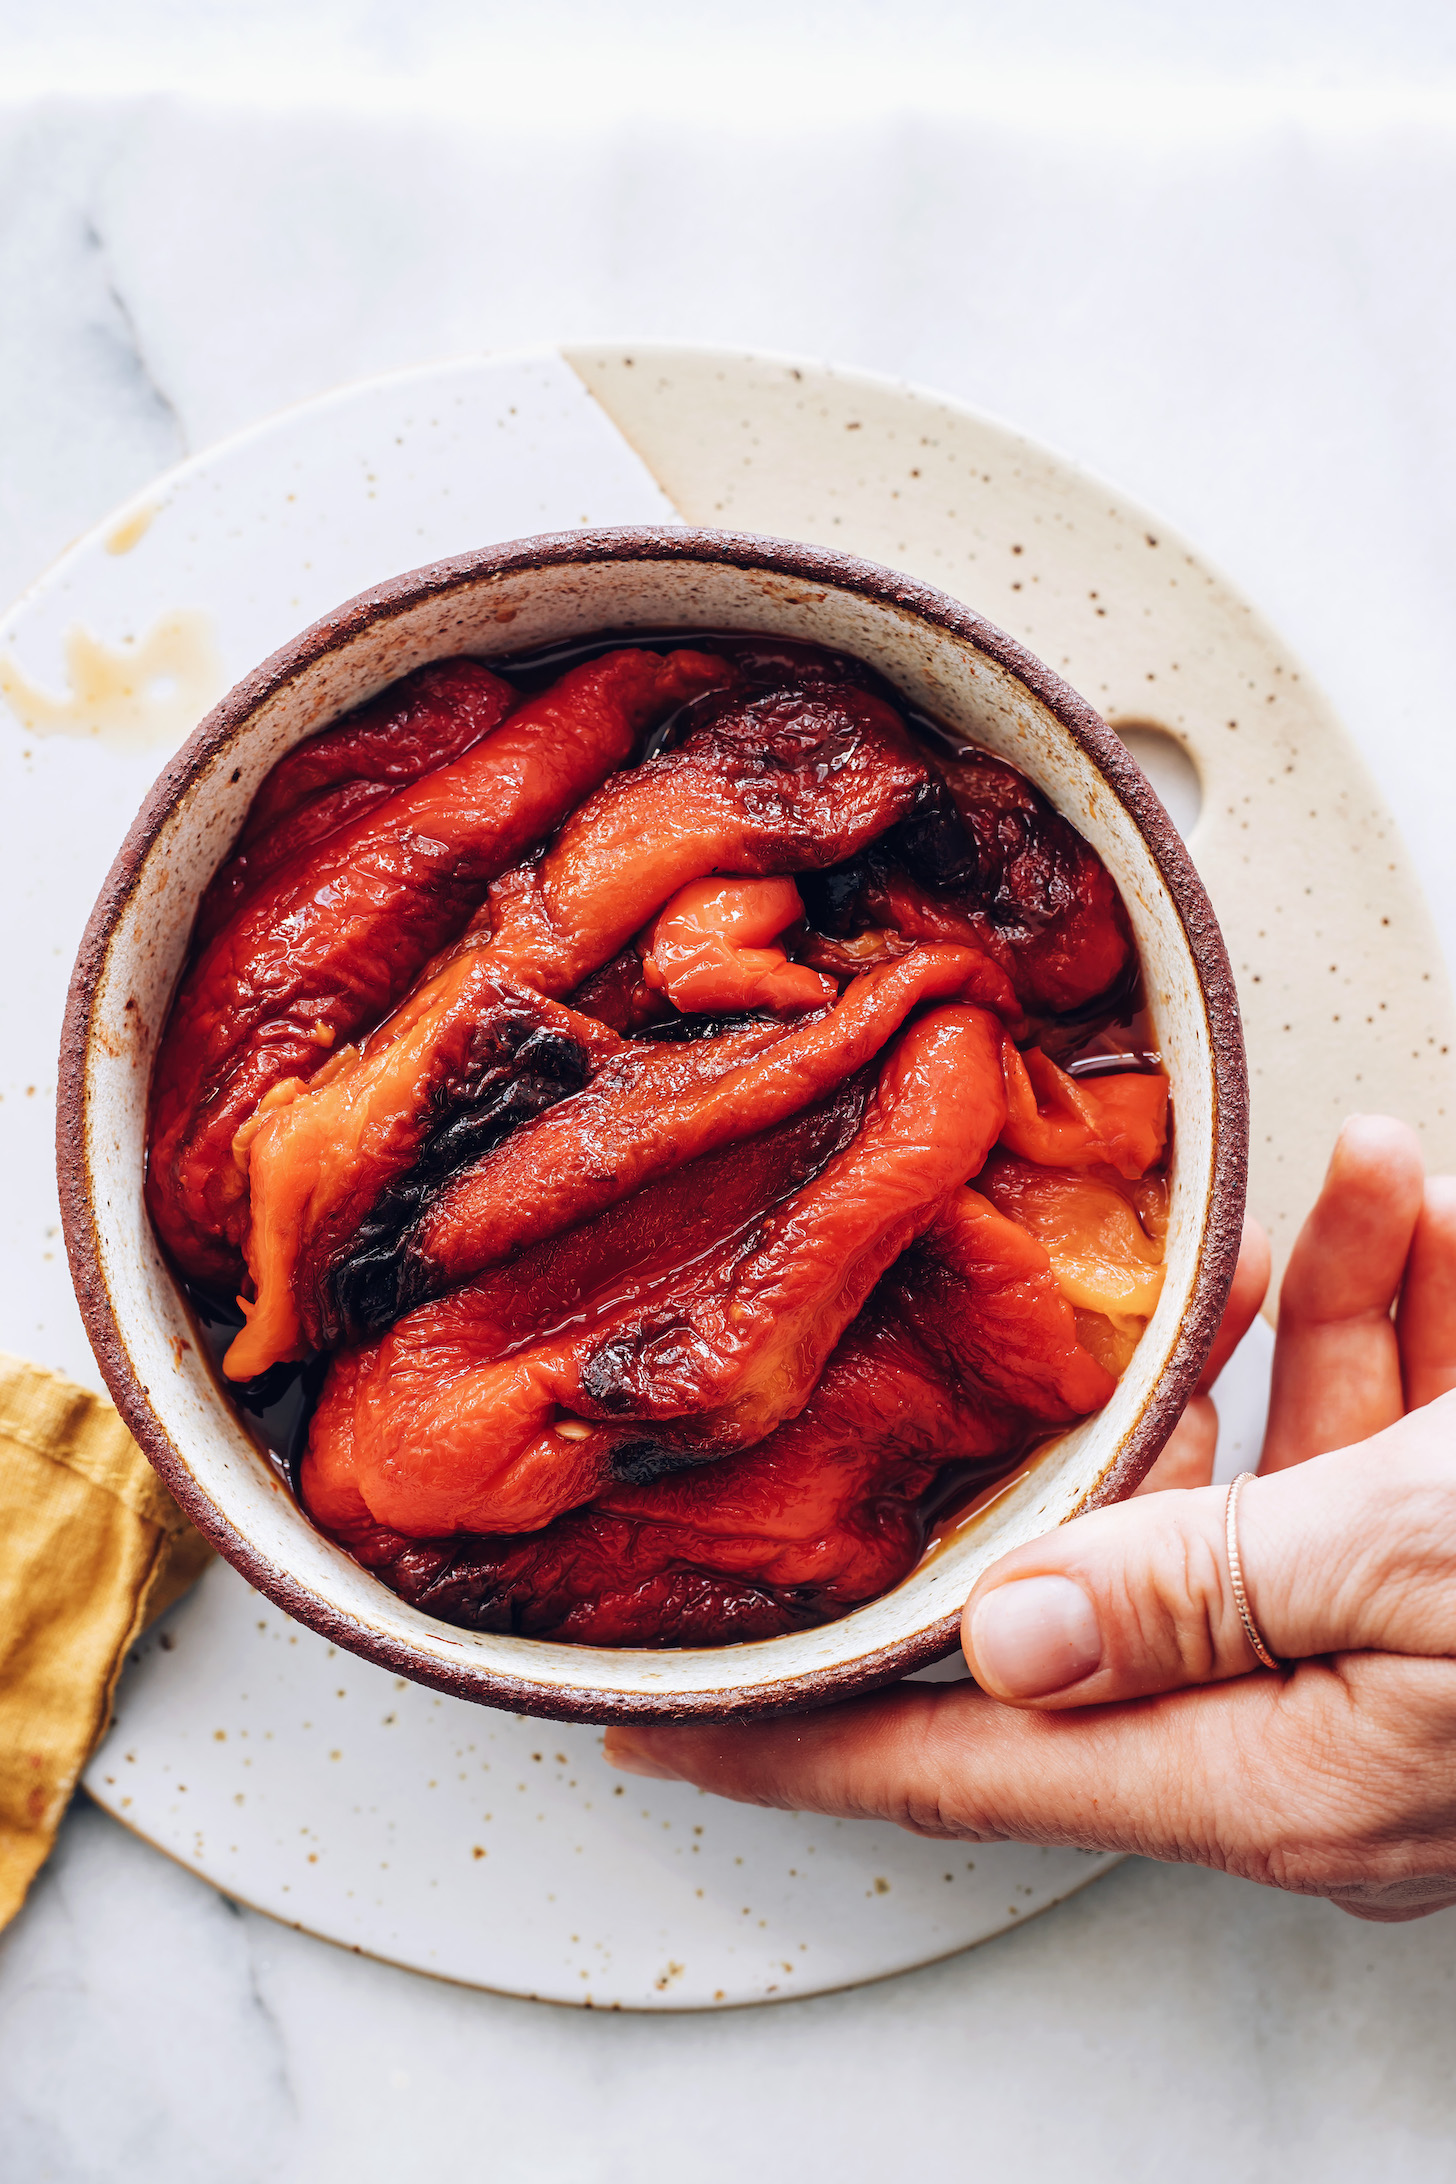 Bowl of roasted red peppers